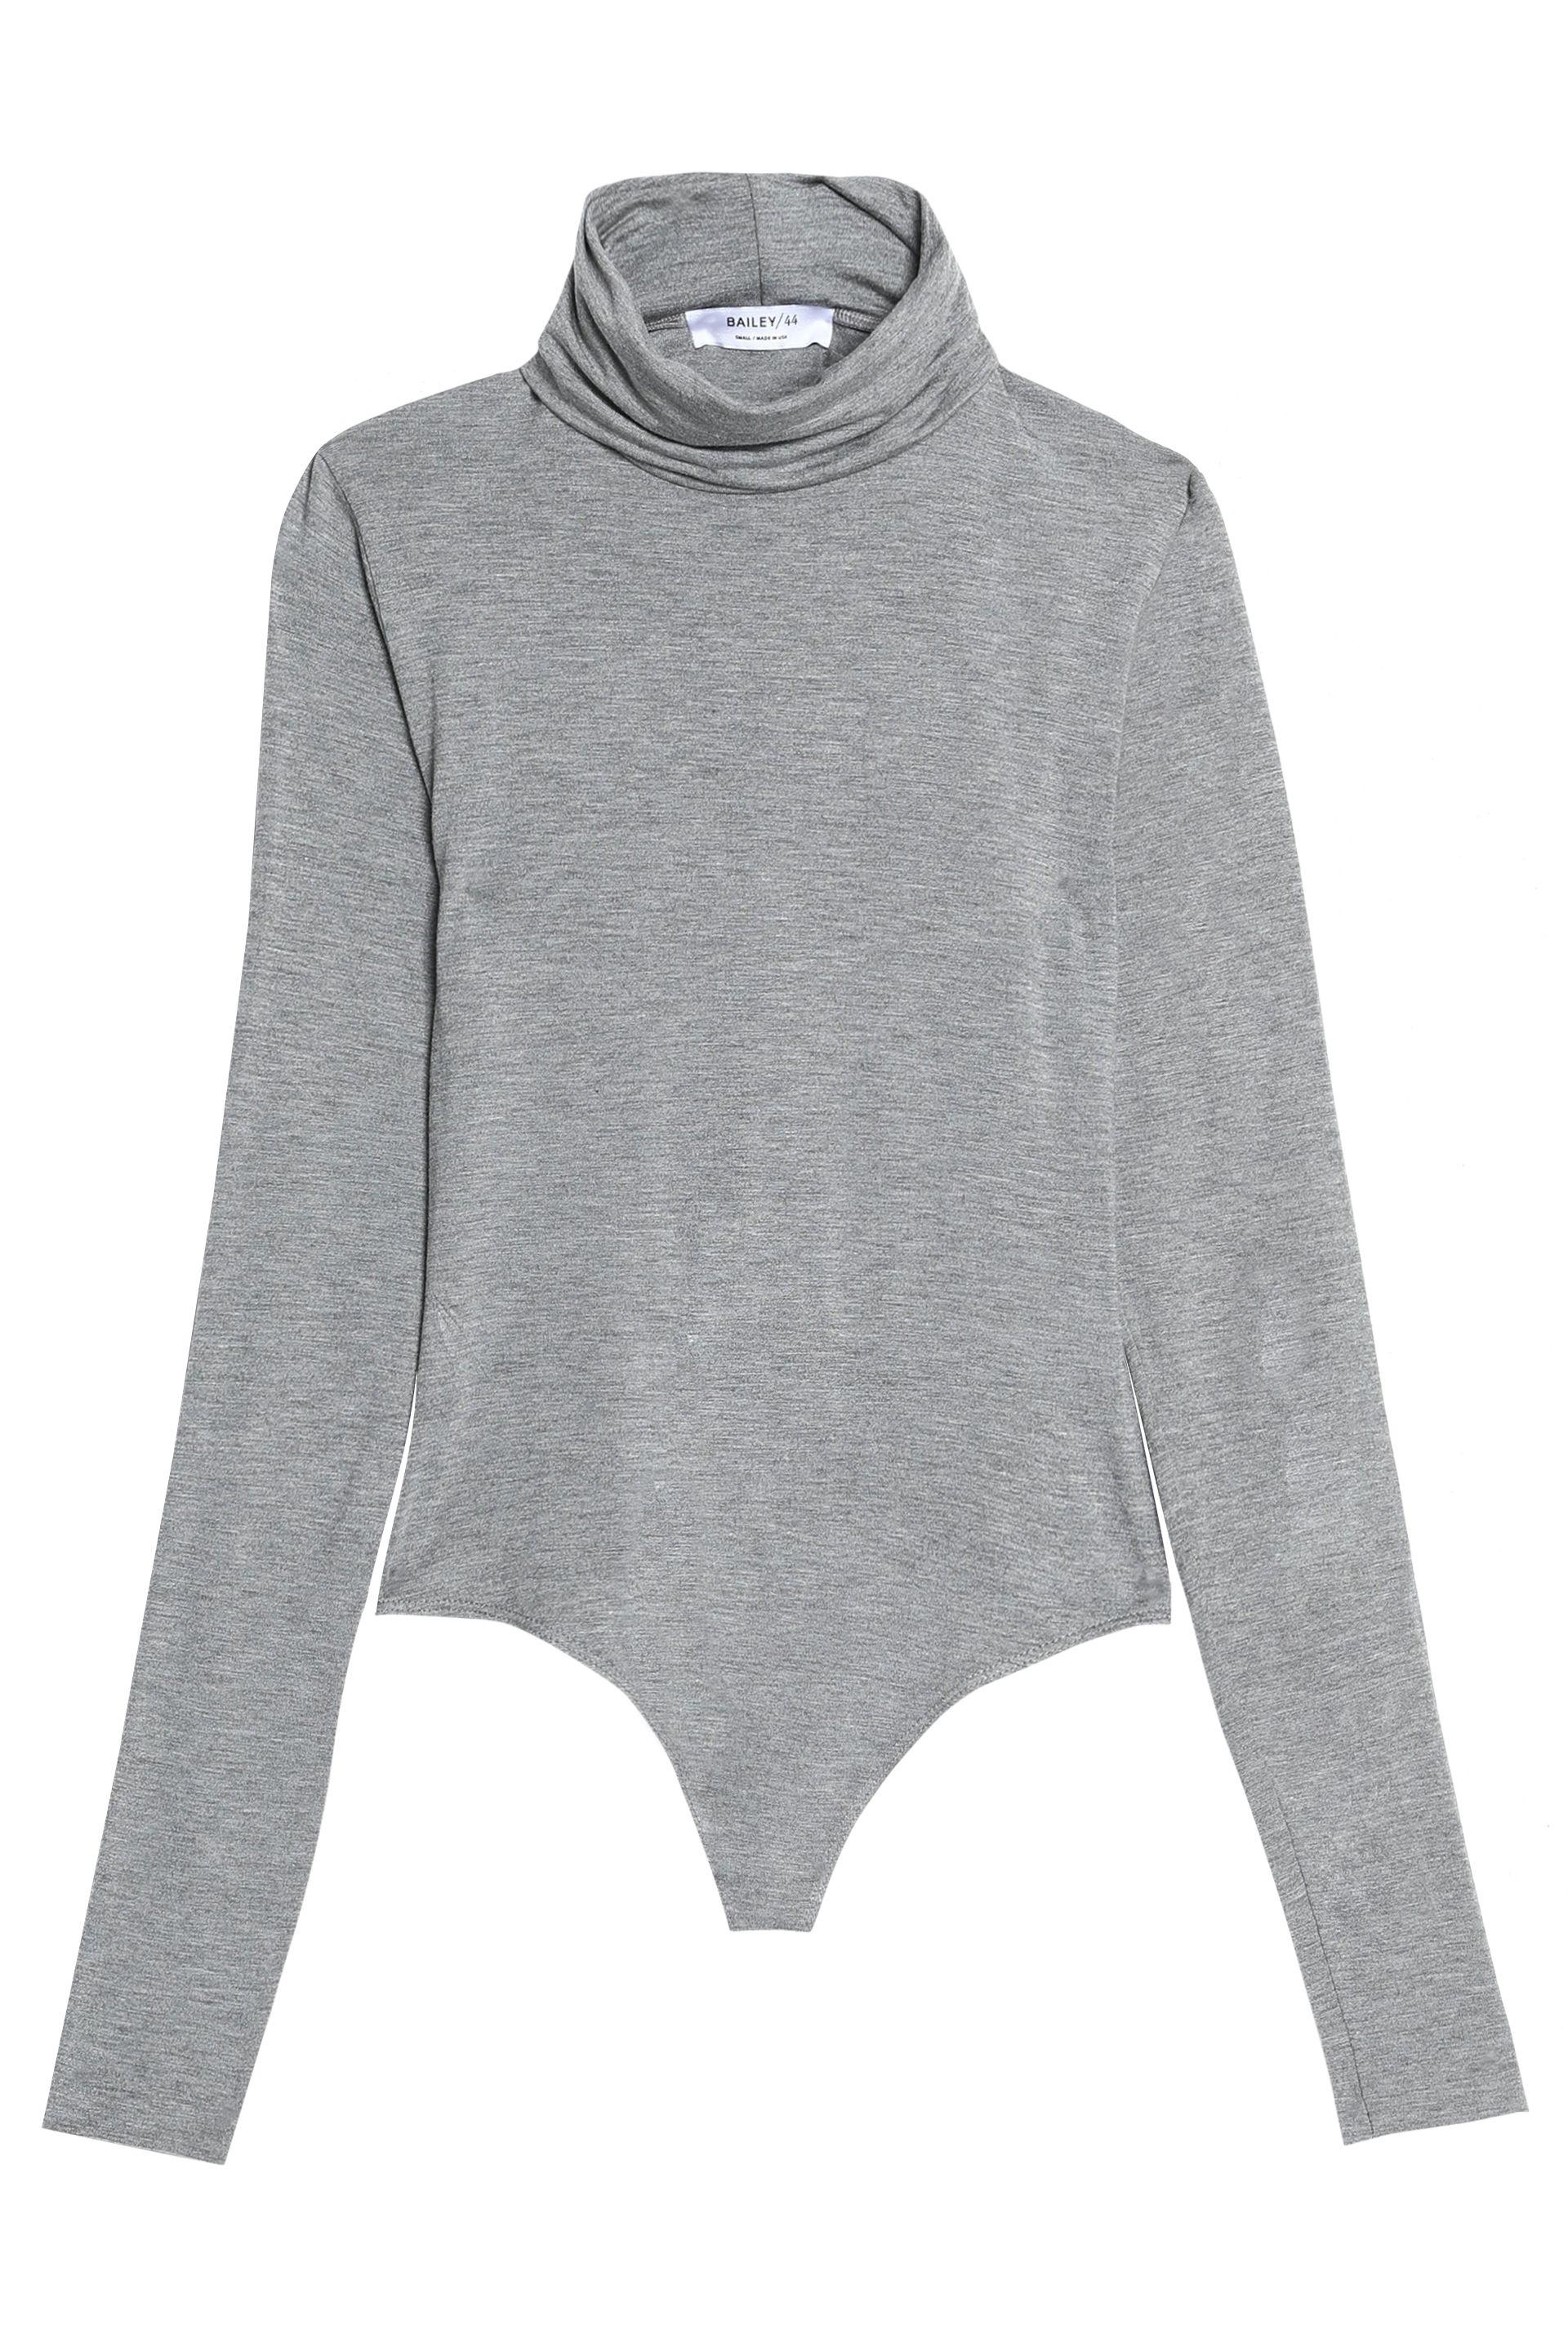 Bailey 44 Woman Mélange Stretch-jersey Turtleneck Bodysuit Gray Size M Bailey 44 Cheap Factory Outlet Real Sale Online Discount Classic PMejqYmuH